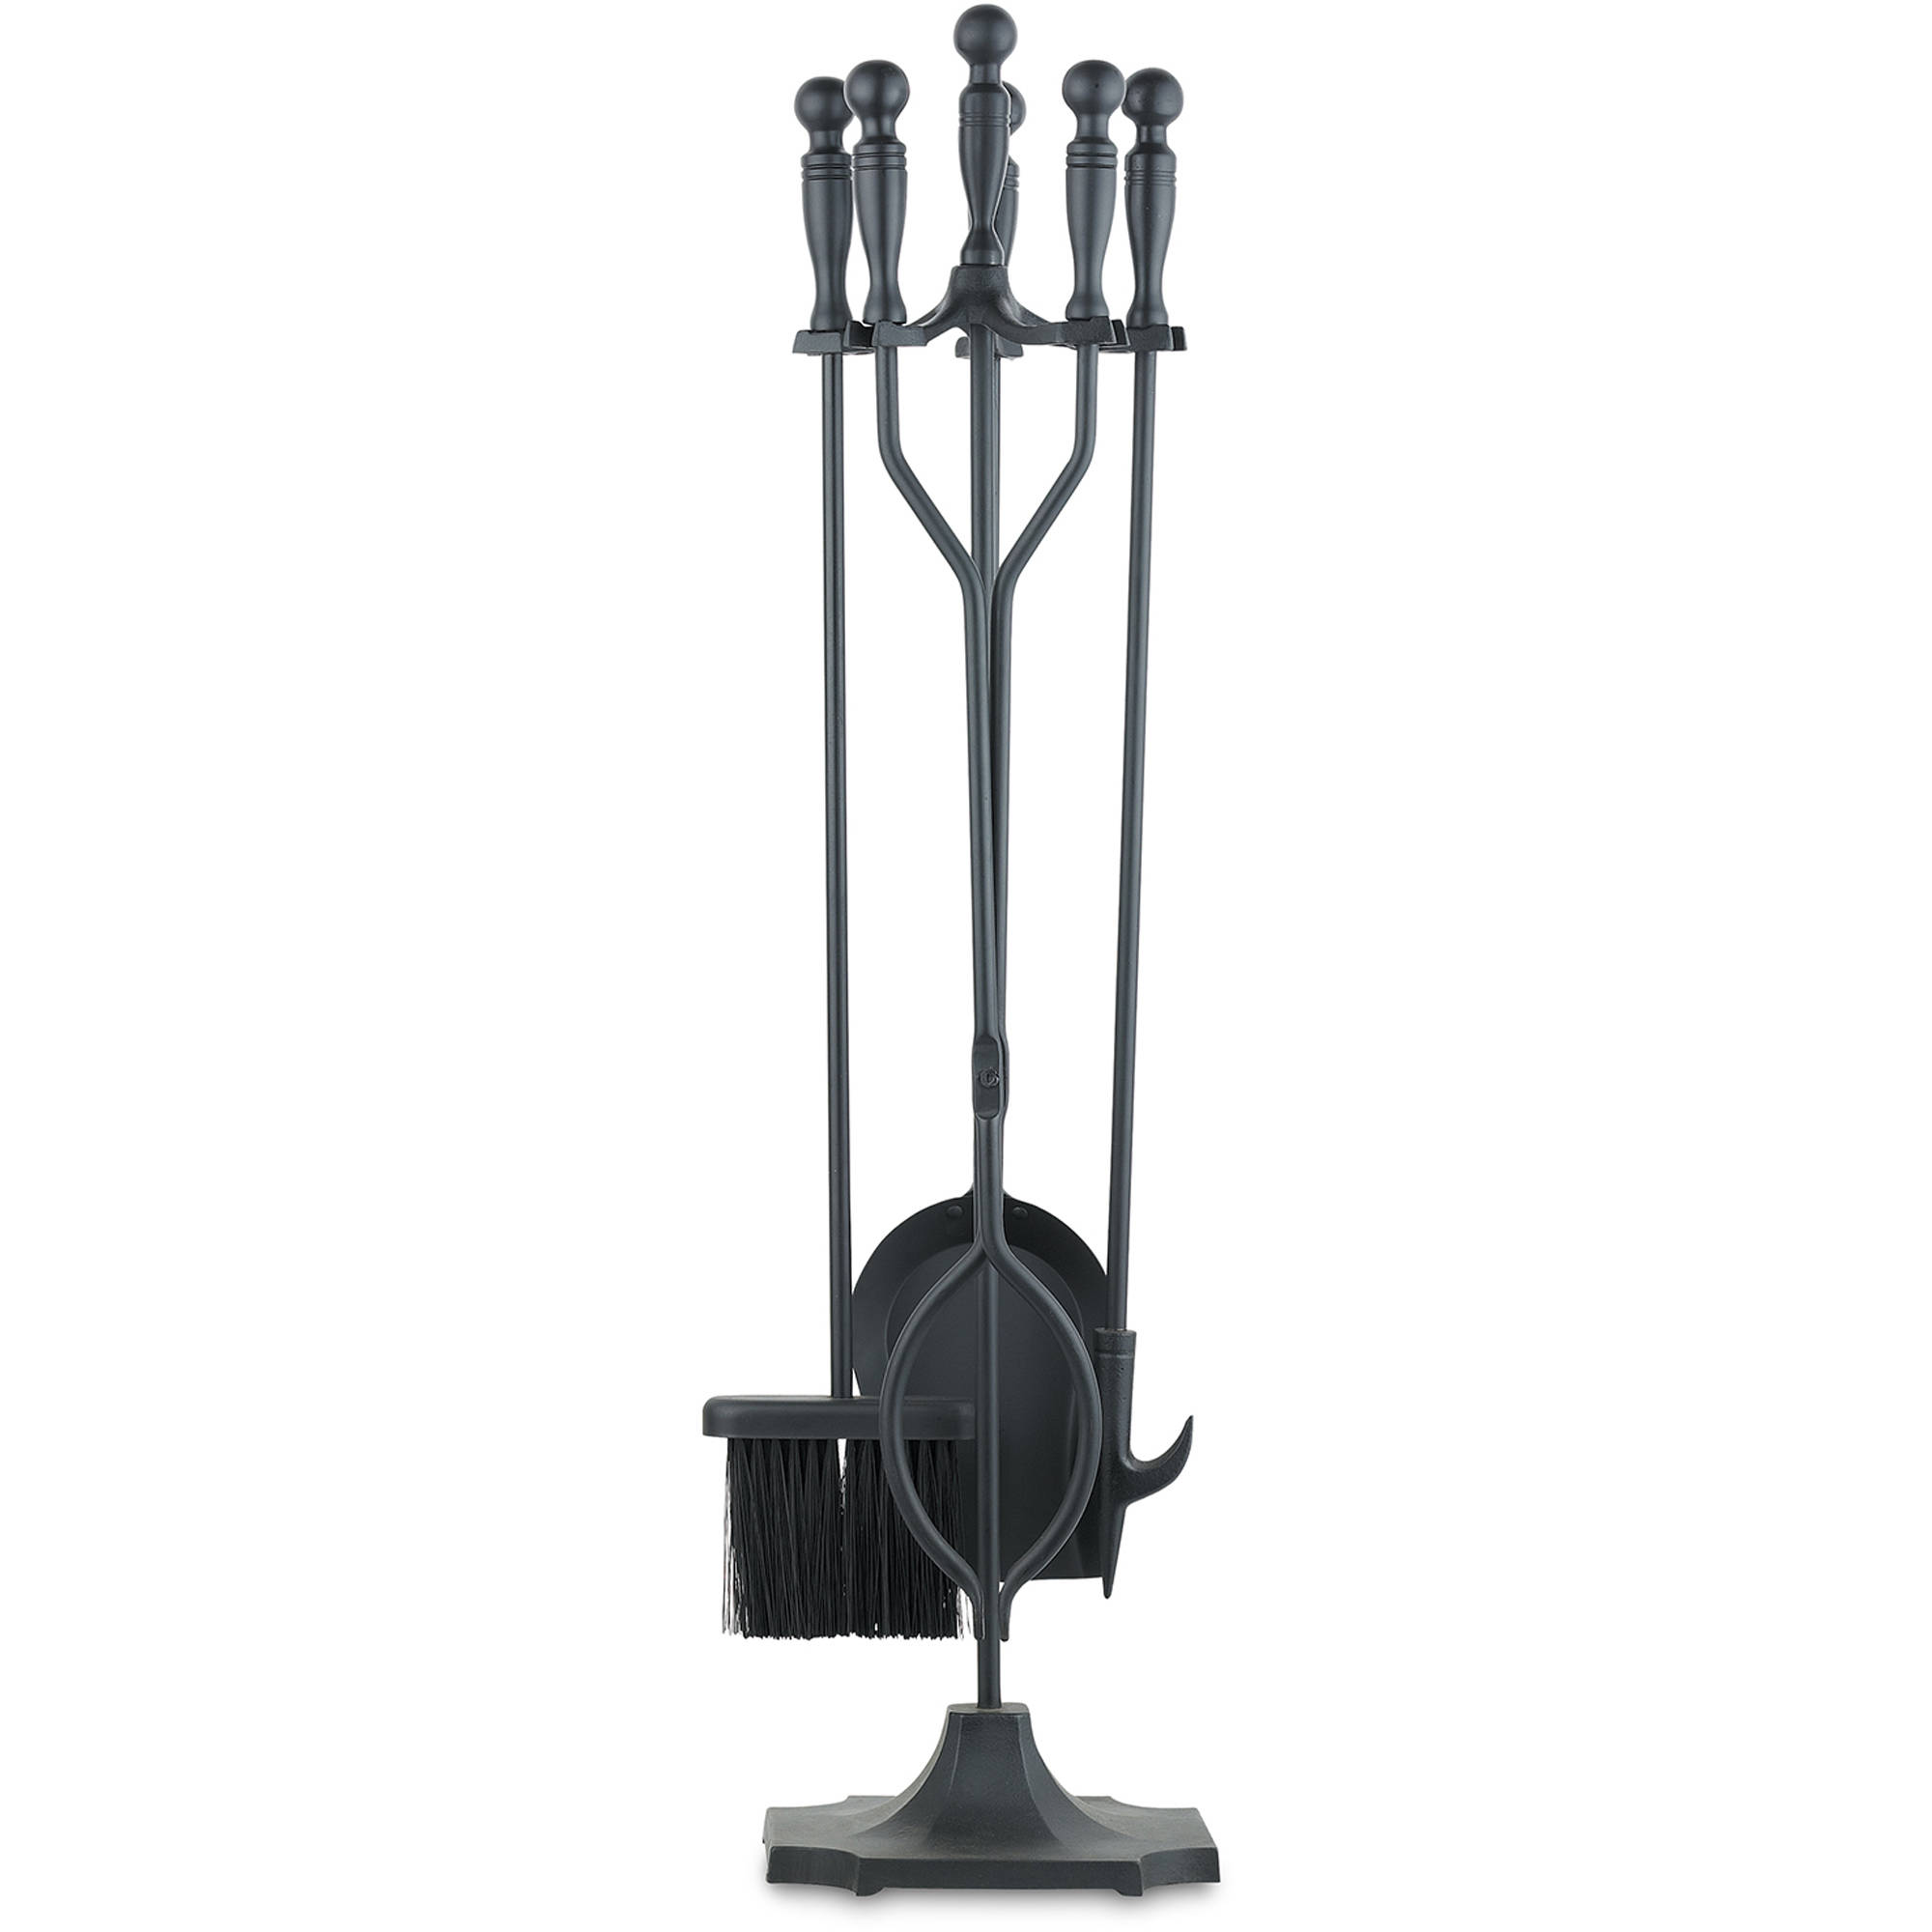 UniFlame 5 Piece Fireplace Toolset Black Walmartcom